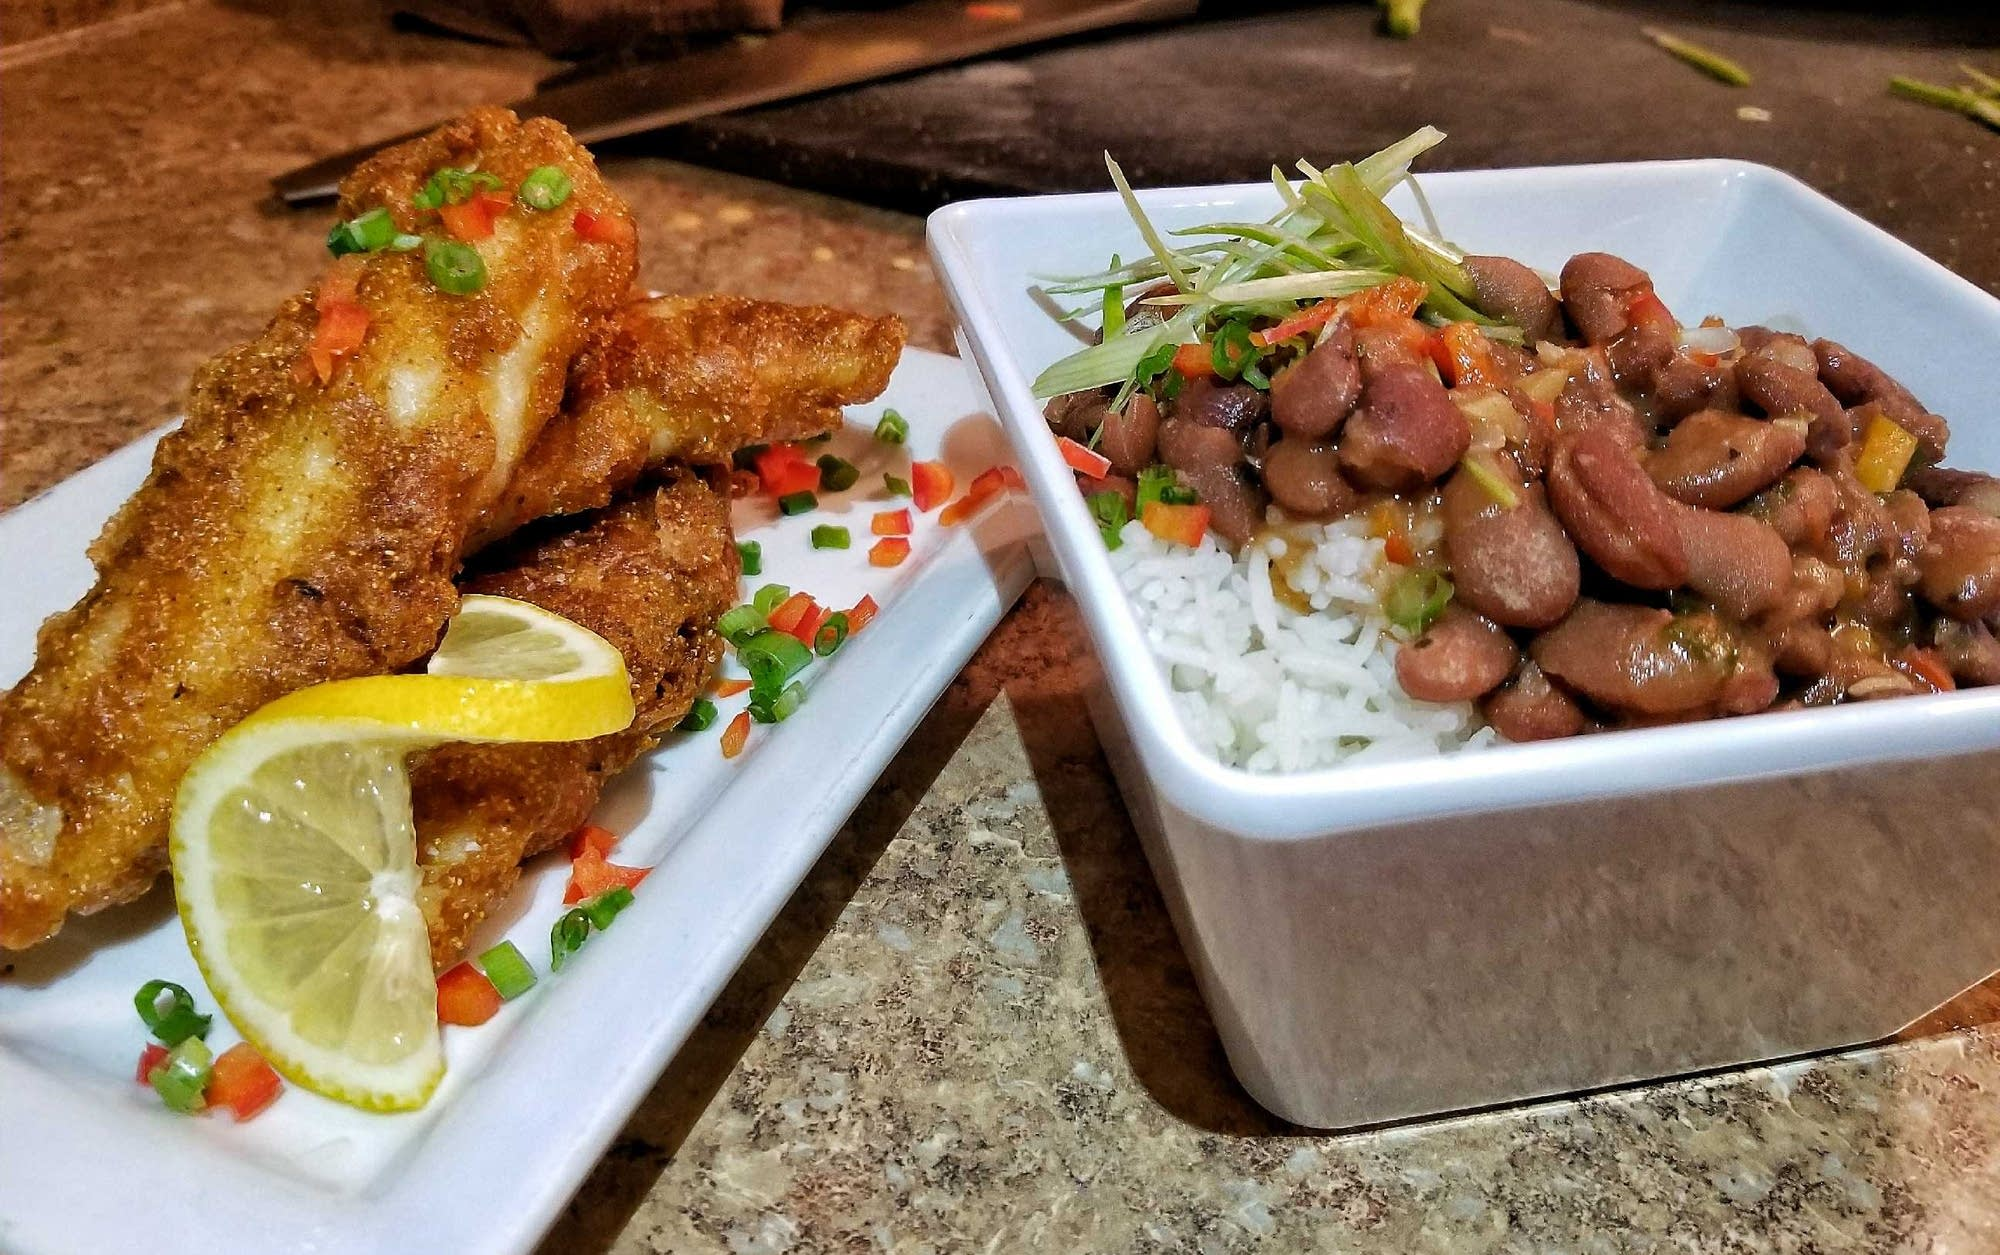 Walleye fingers, left, and vegan red beans and rice